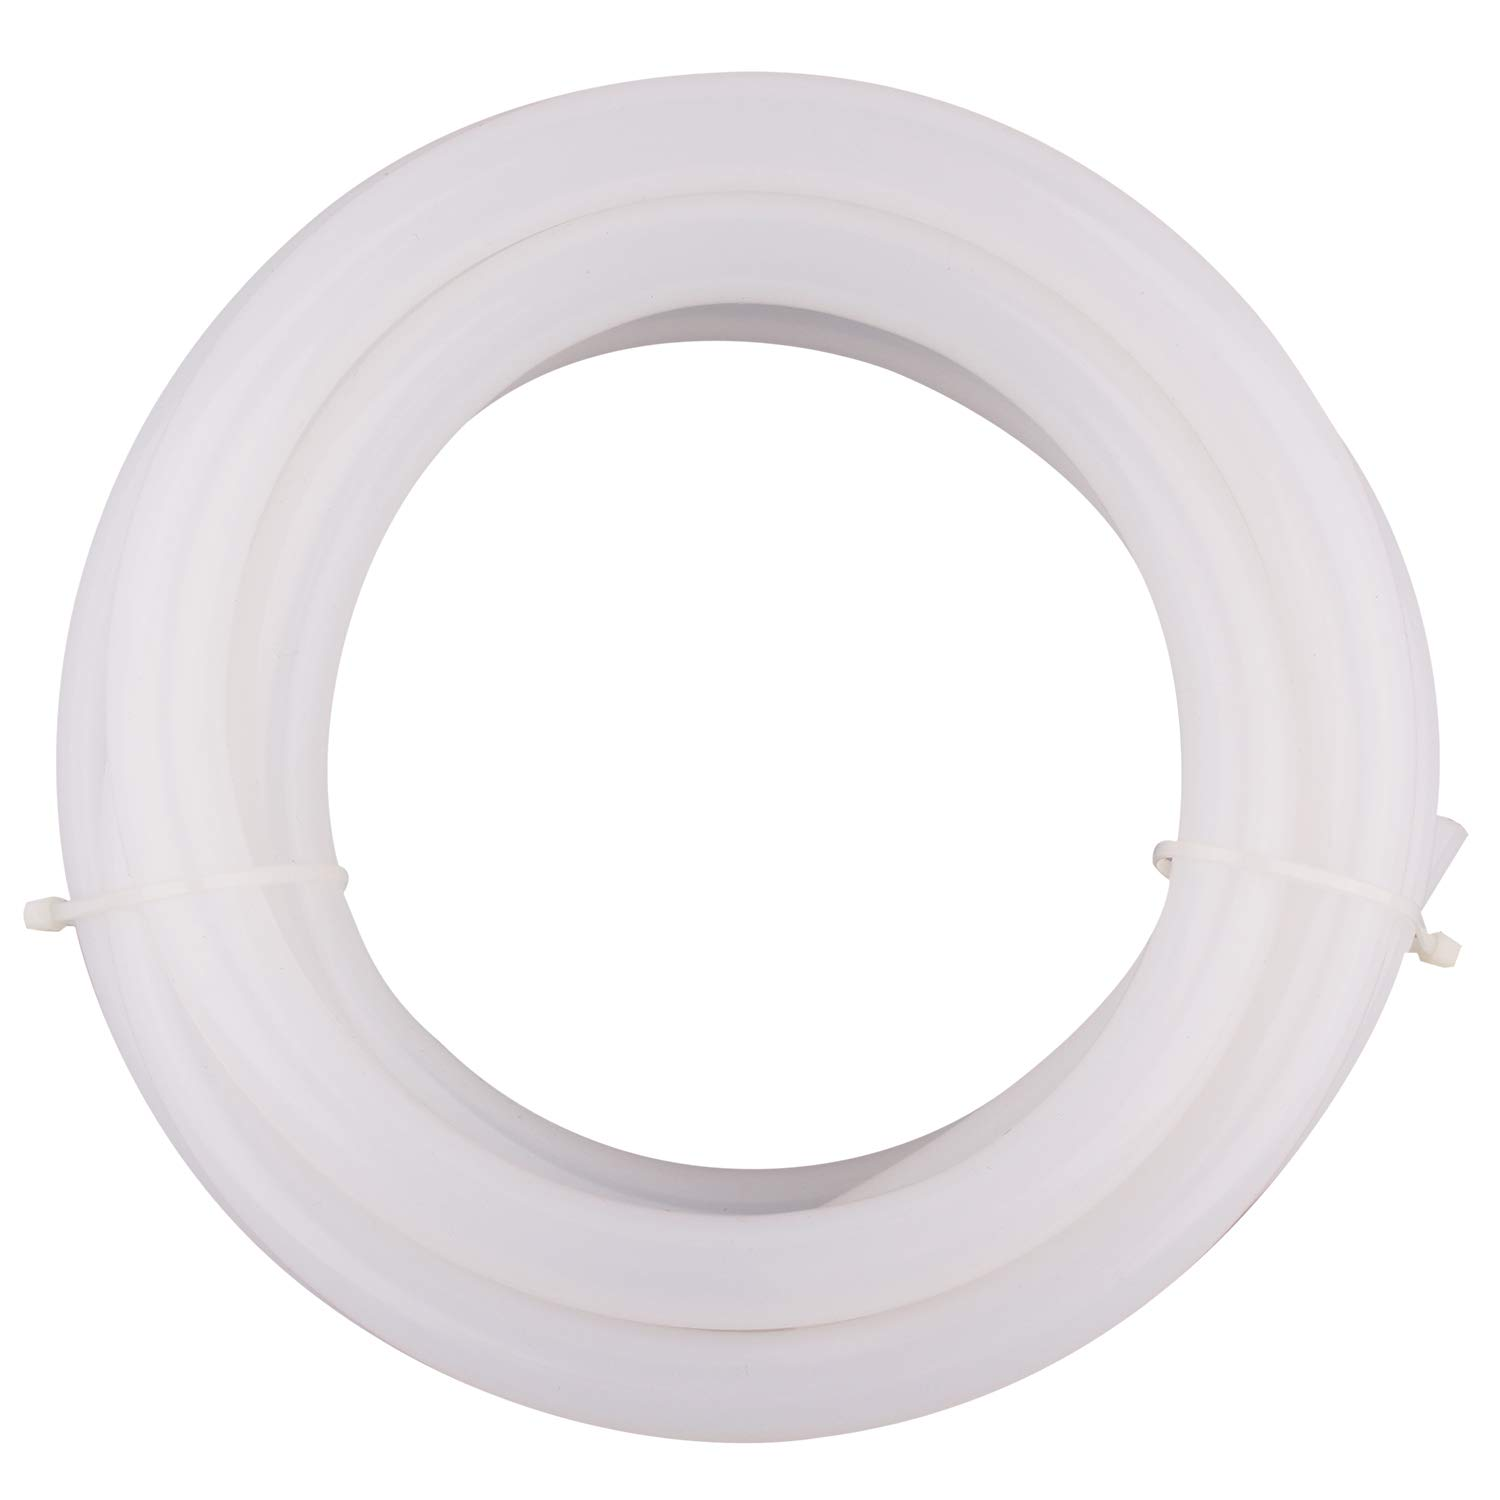 """DERPIPE Silicone Tubing – 1/2""""ID 3/4"""" OD Food Grade Flexible Thick for Homebrewing Pump Transfer 3 Meters(10ft) Length"""